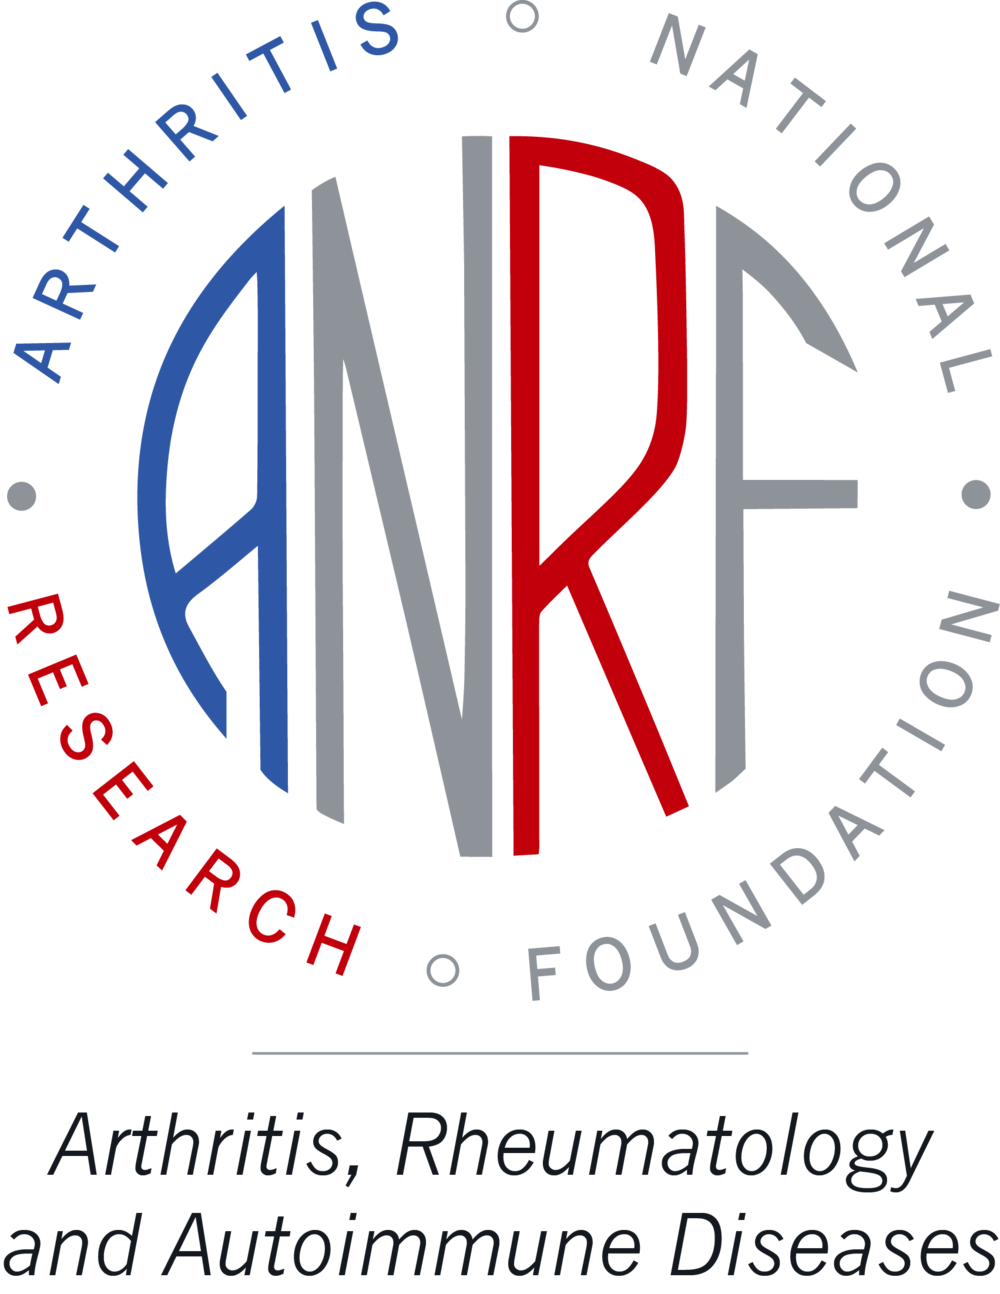 ANRF-FINAL-withTag (1).png